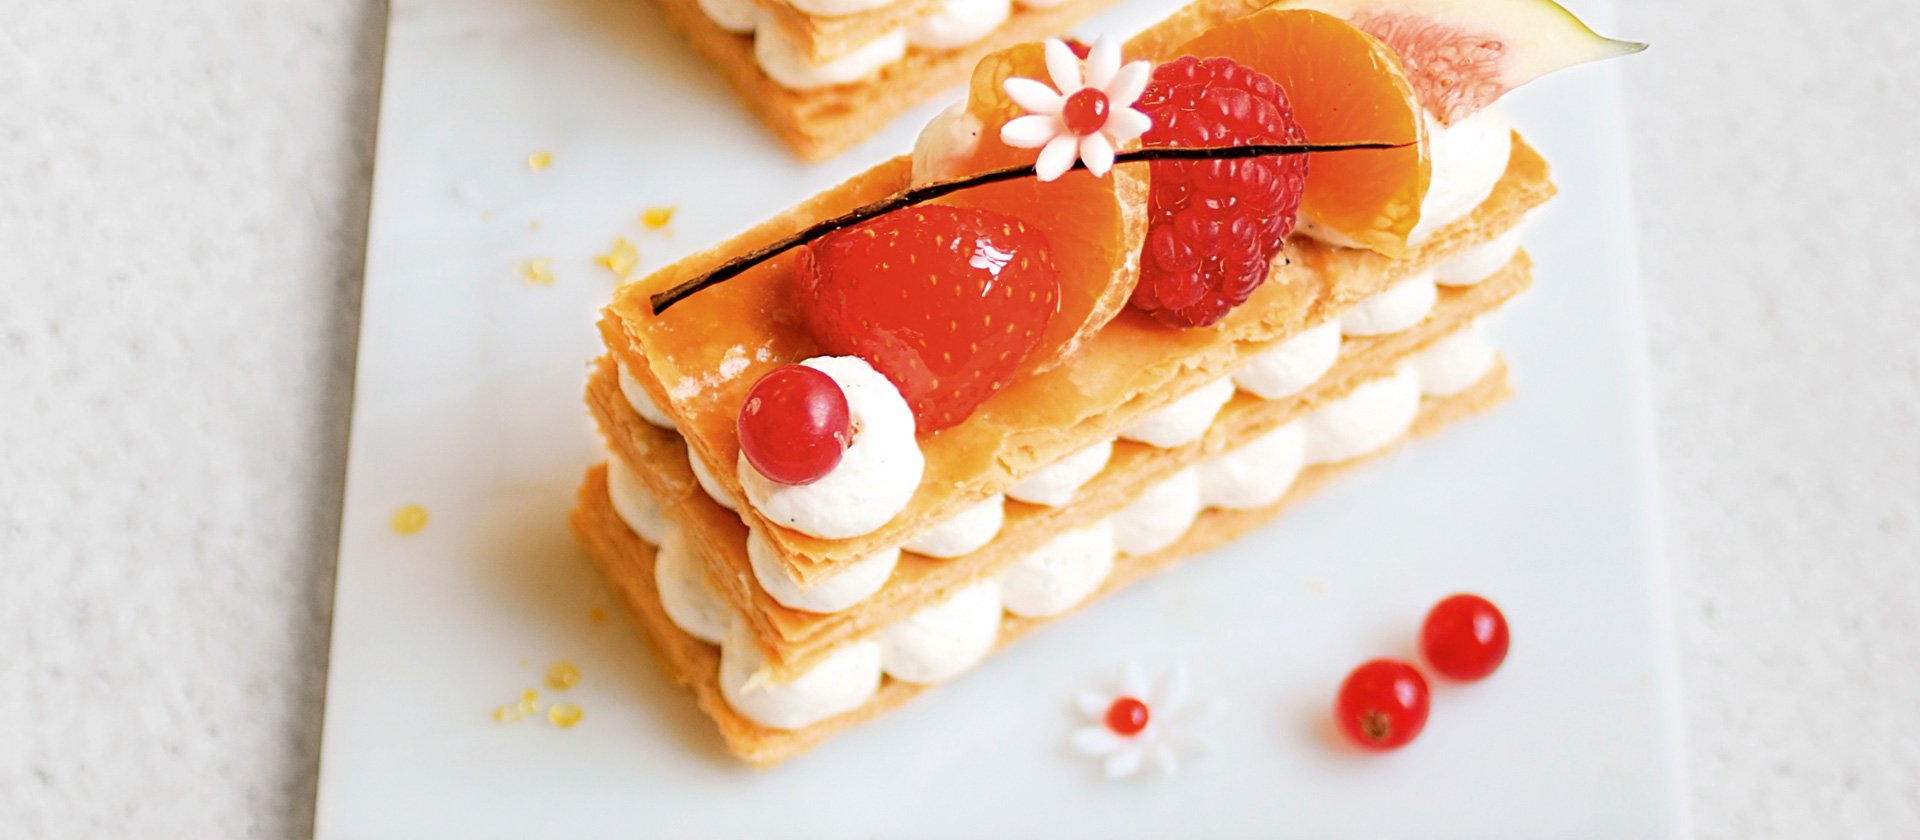 2017 Bastille Day recipe: vanilla Chantilly and fresh fruit mille-feuille